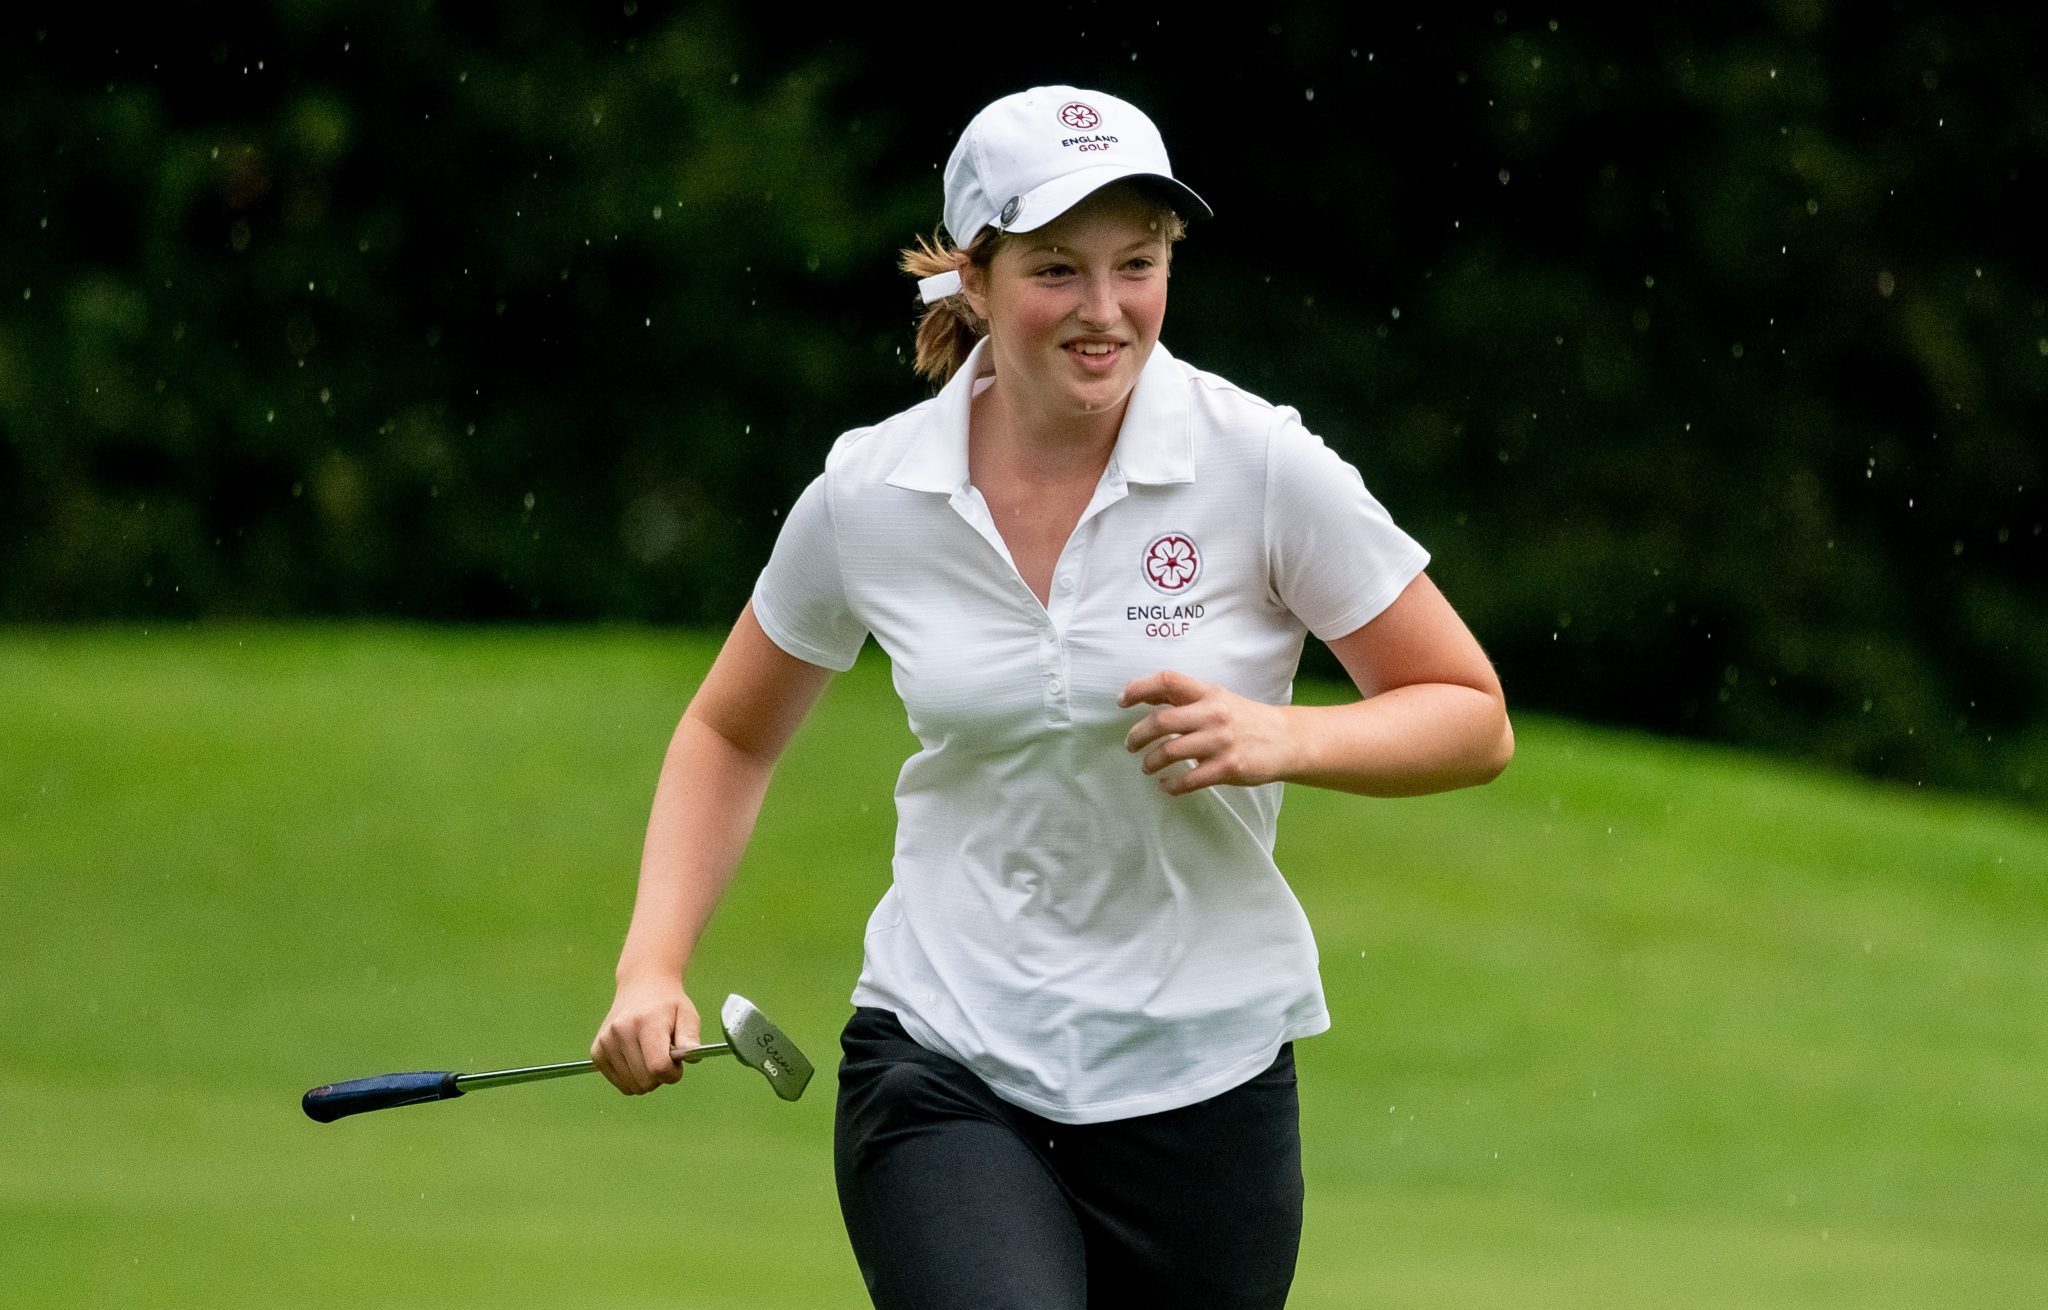 Woad will relish home comforts at trailblazing England Golf event